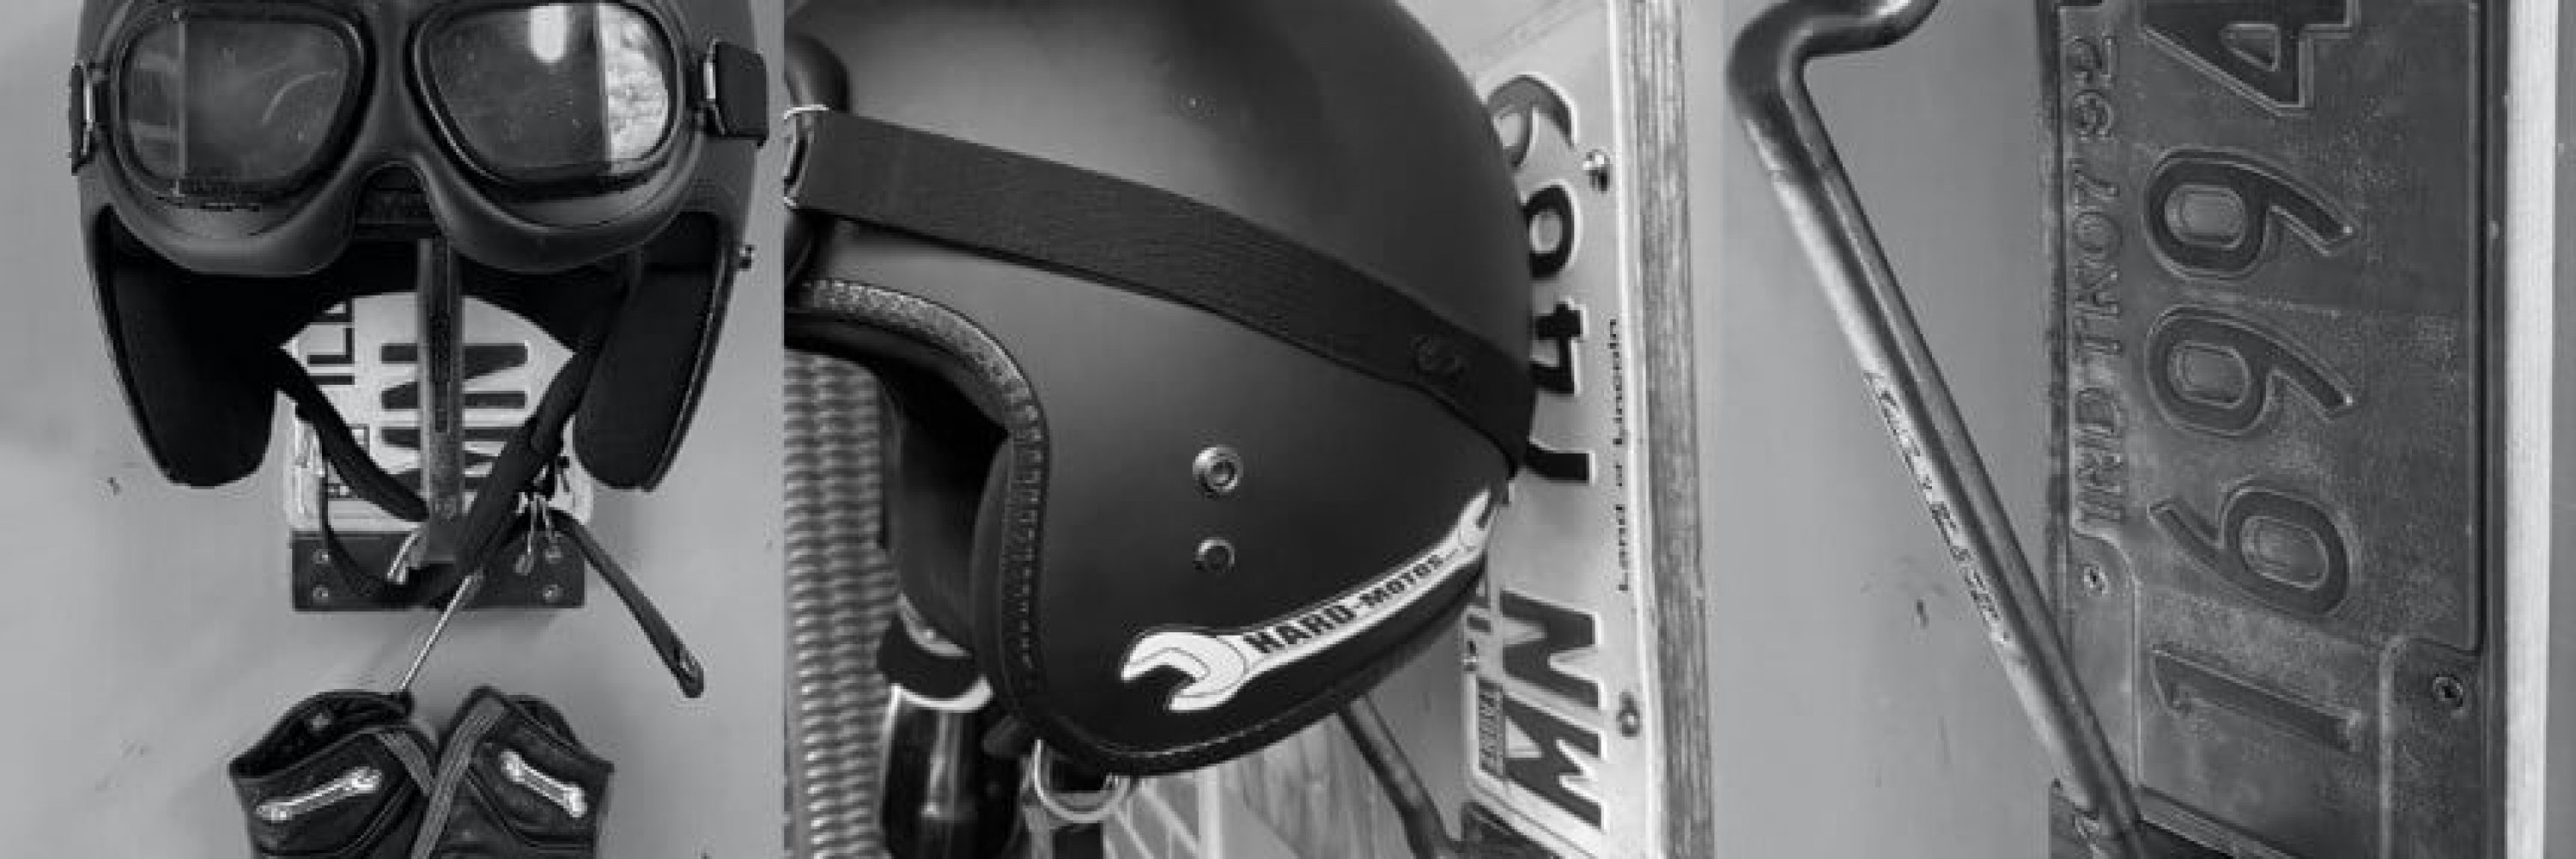 keep your helmet safe on this unique handmade wall-mounted holder!